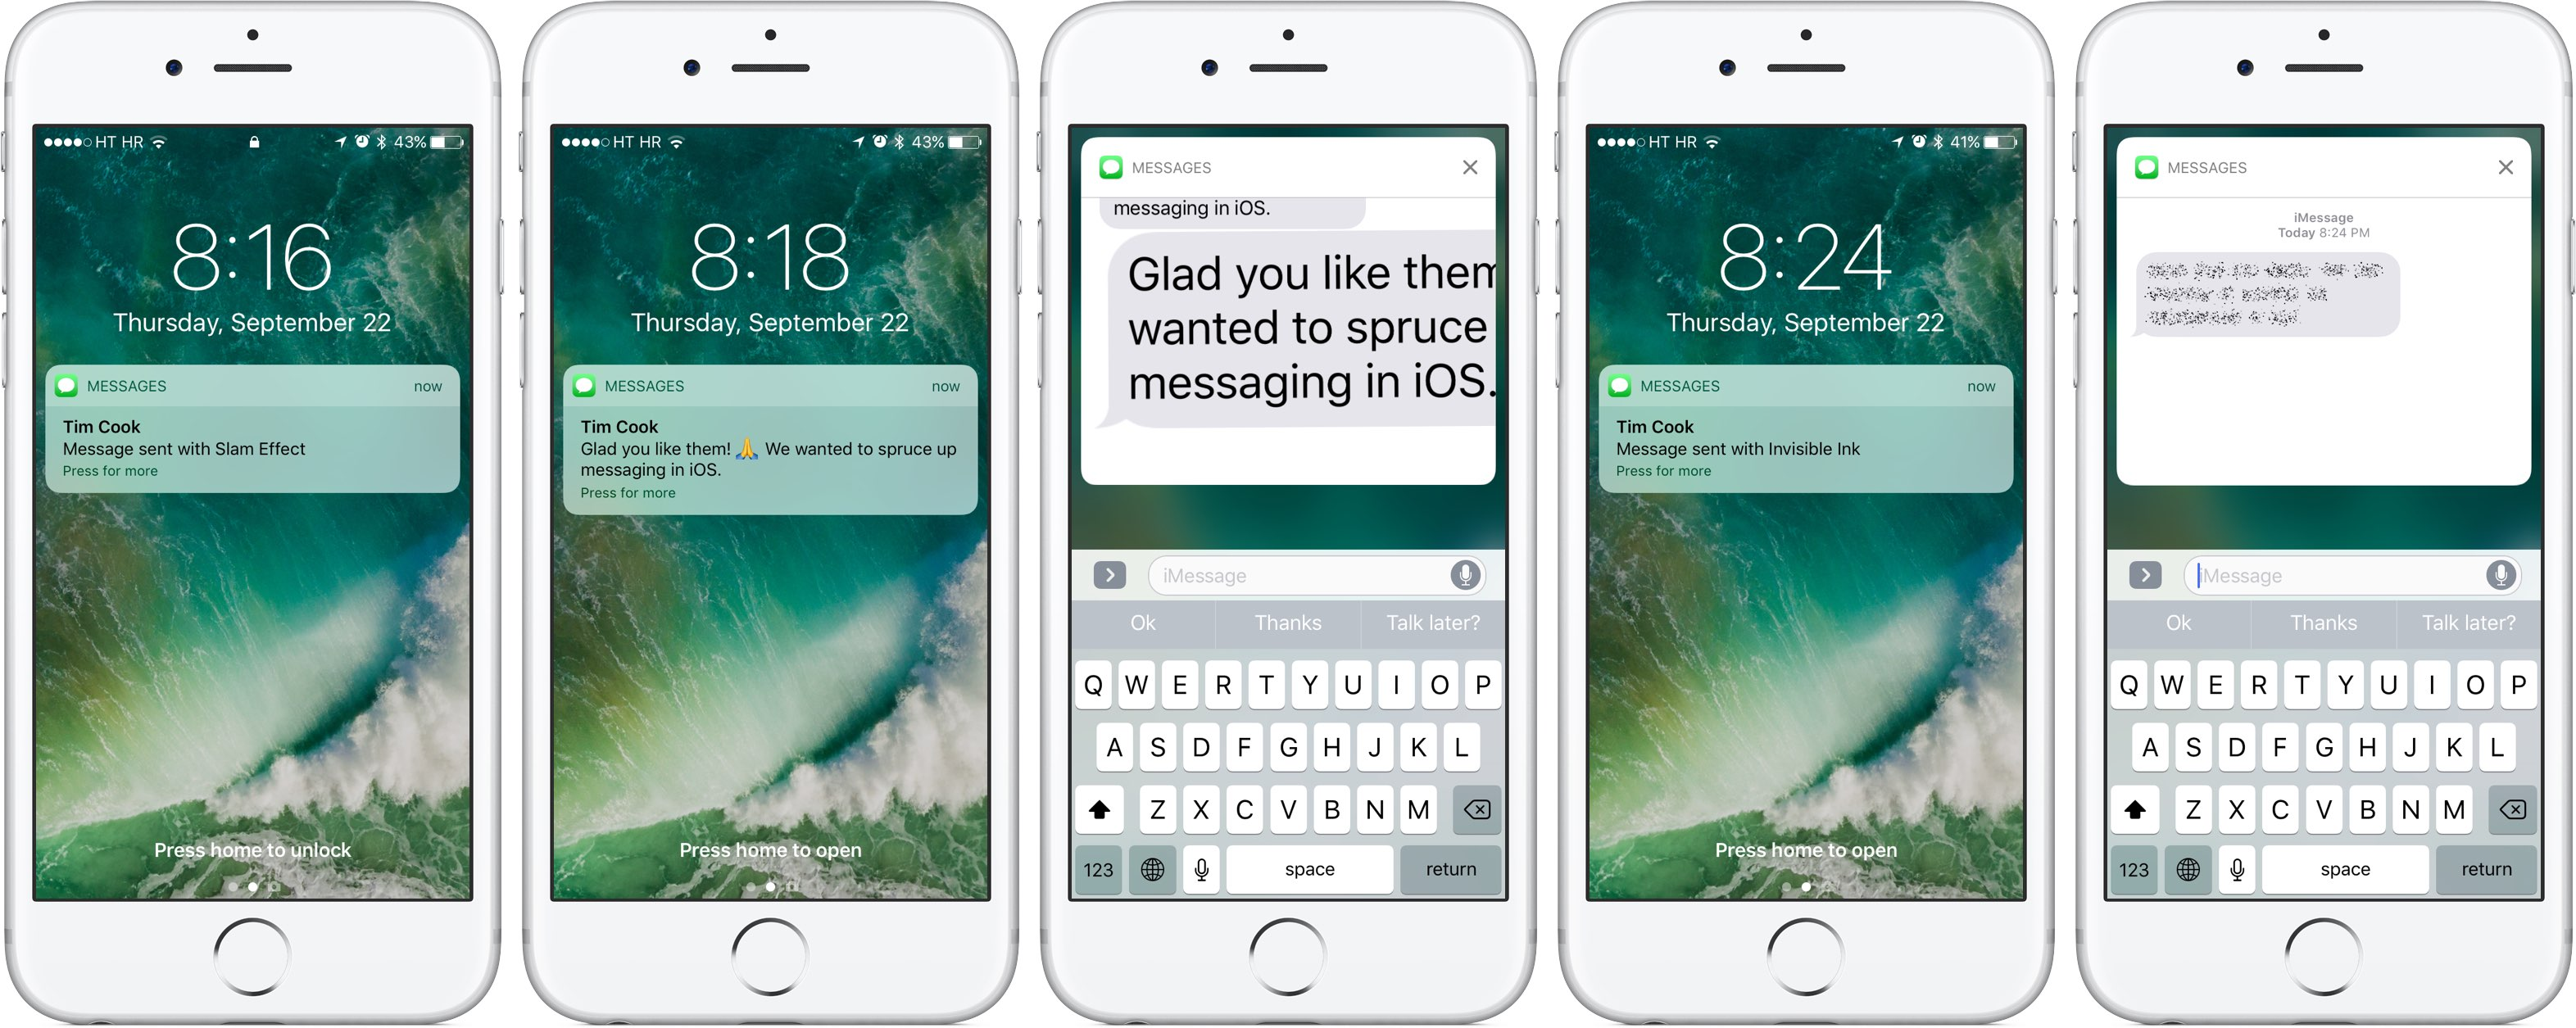 How to use bubble and screen effects in Messages for iPhone